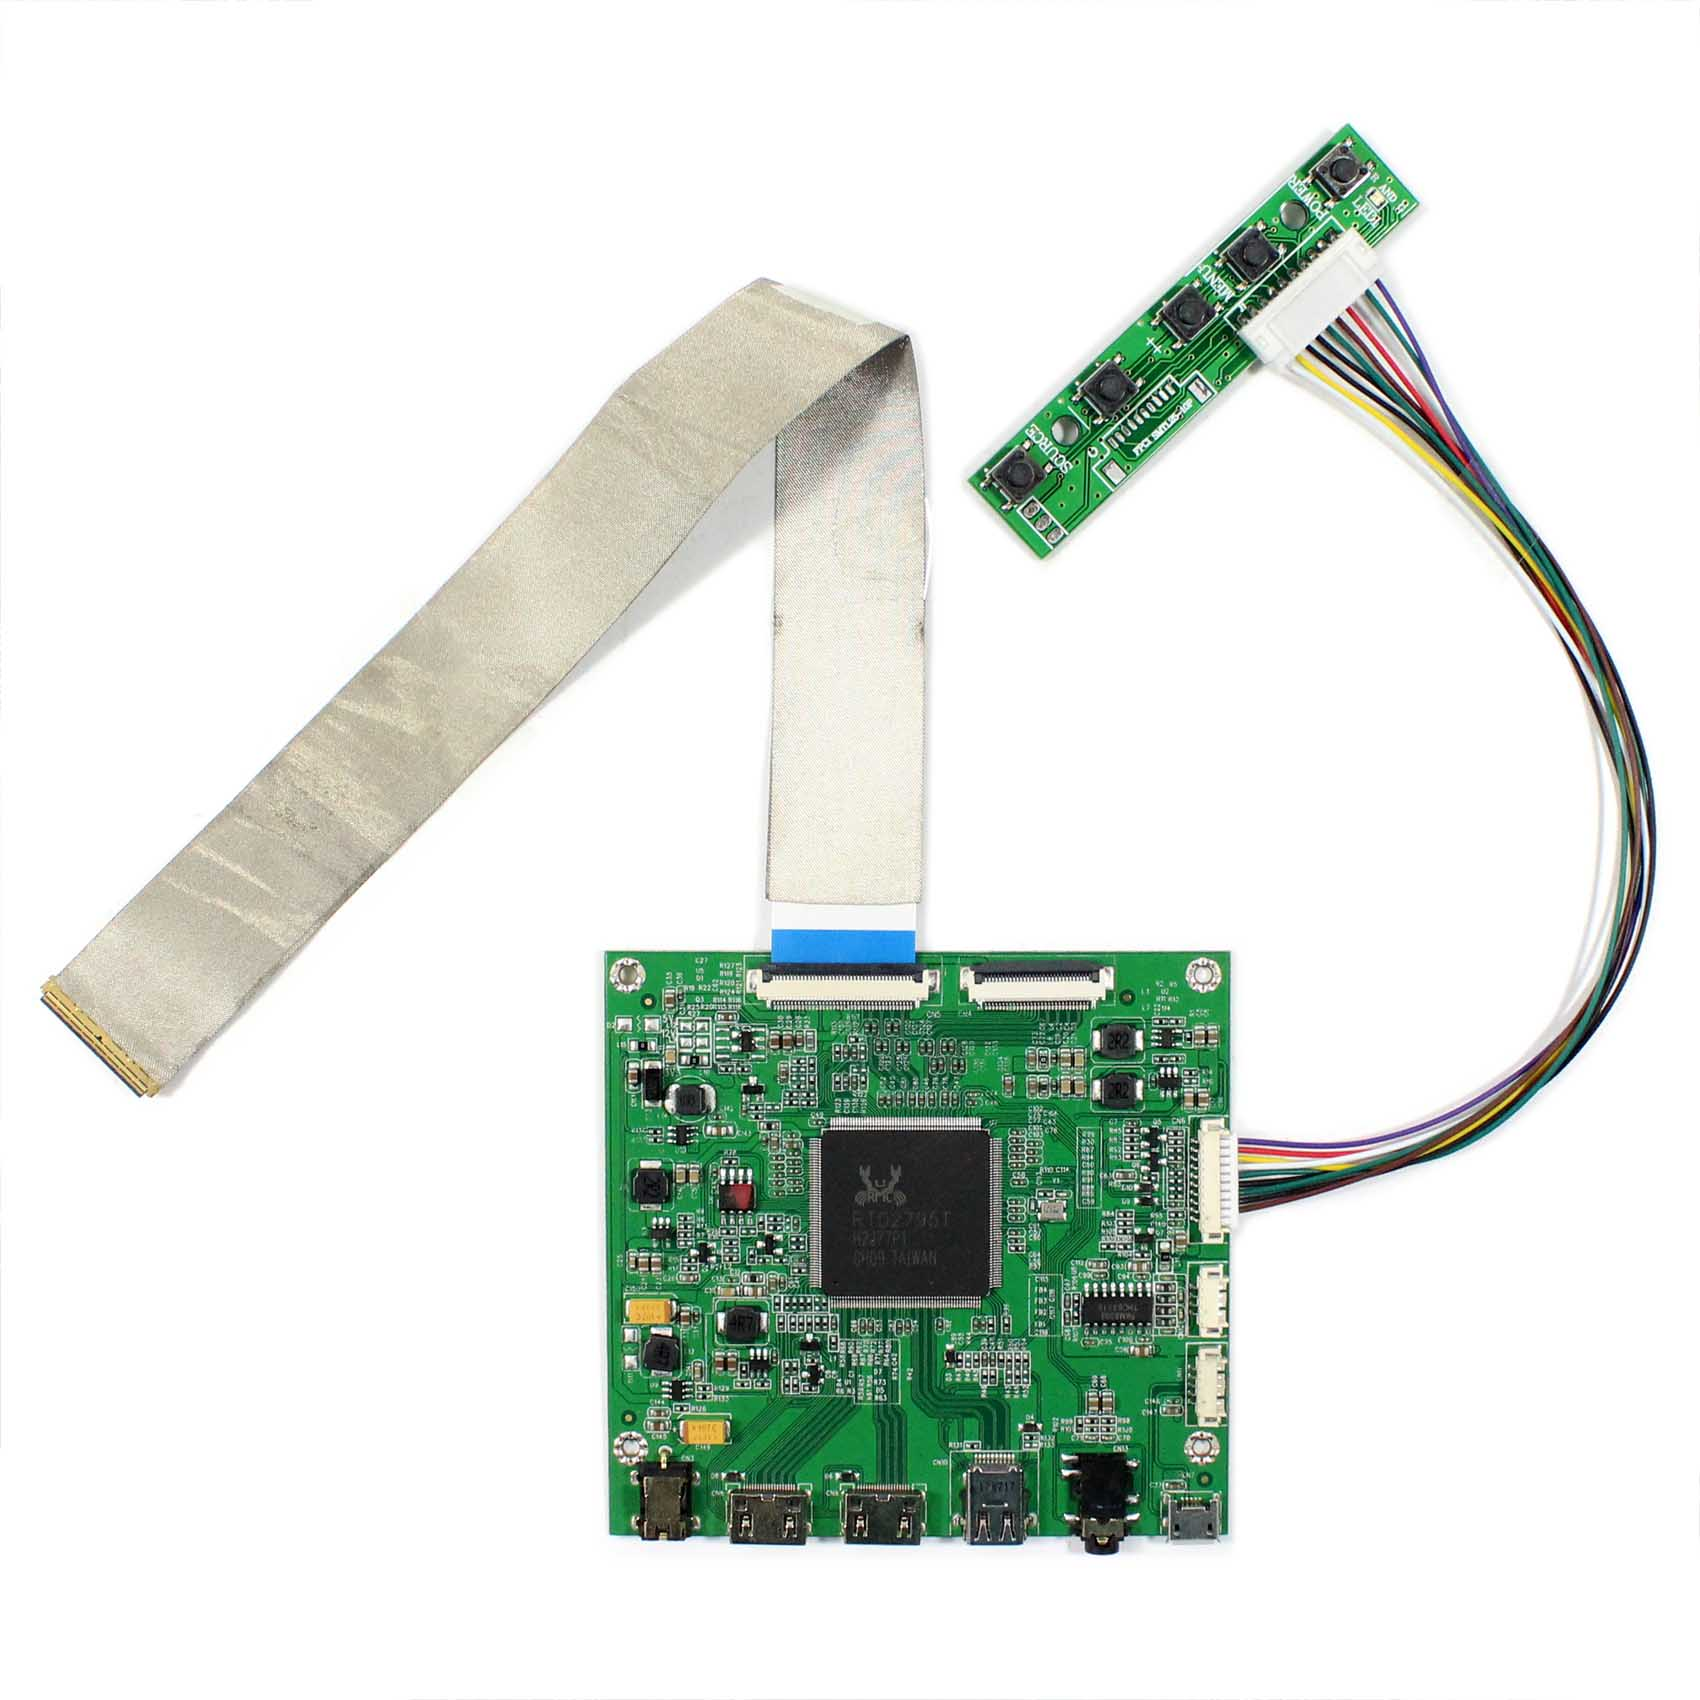 HDMI DP LCD Contoller Board Work For 4K 15 6 3840x2160 NV156QUM LCD Screen